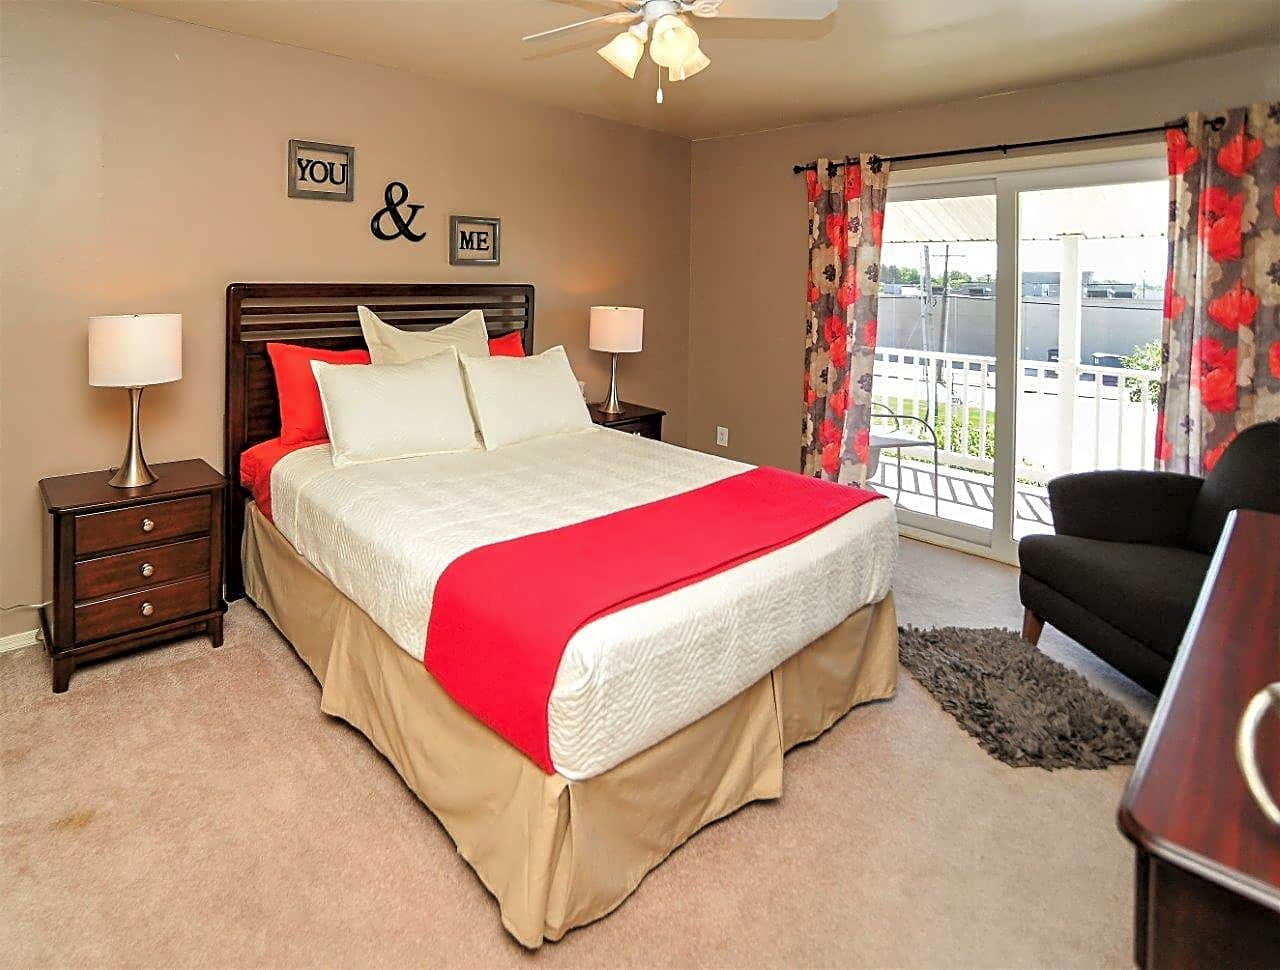 Apartments Near Lebanon Valley Greentree Village Townhomes for Lebanon Valley College Students in Annville, PA